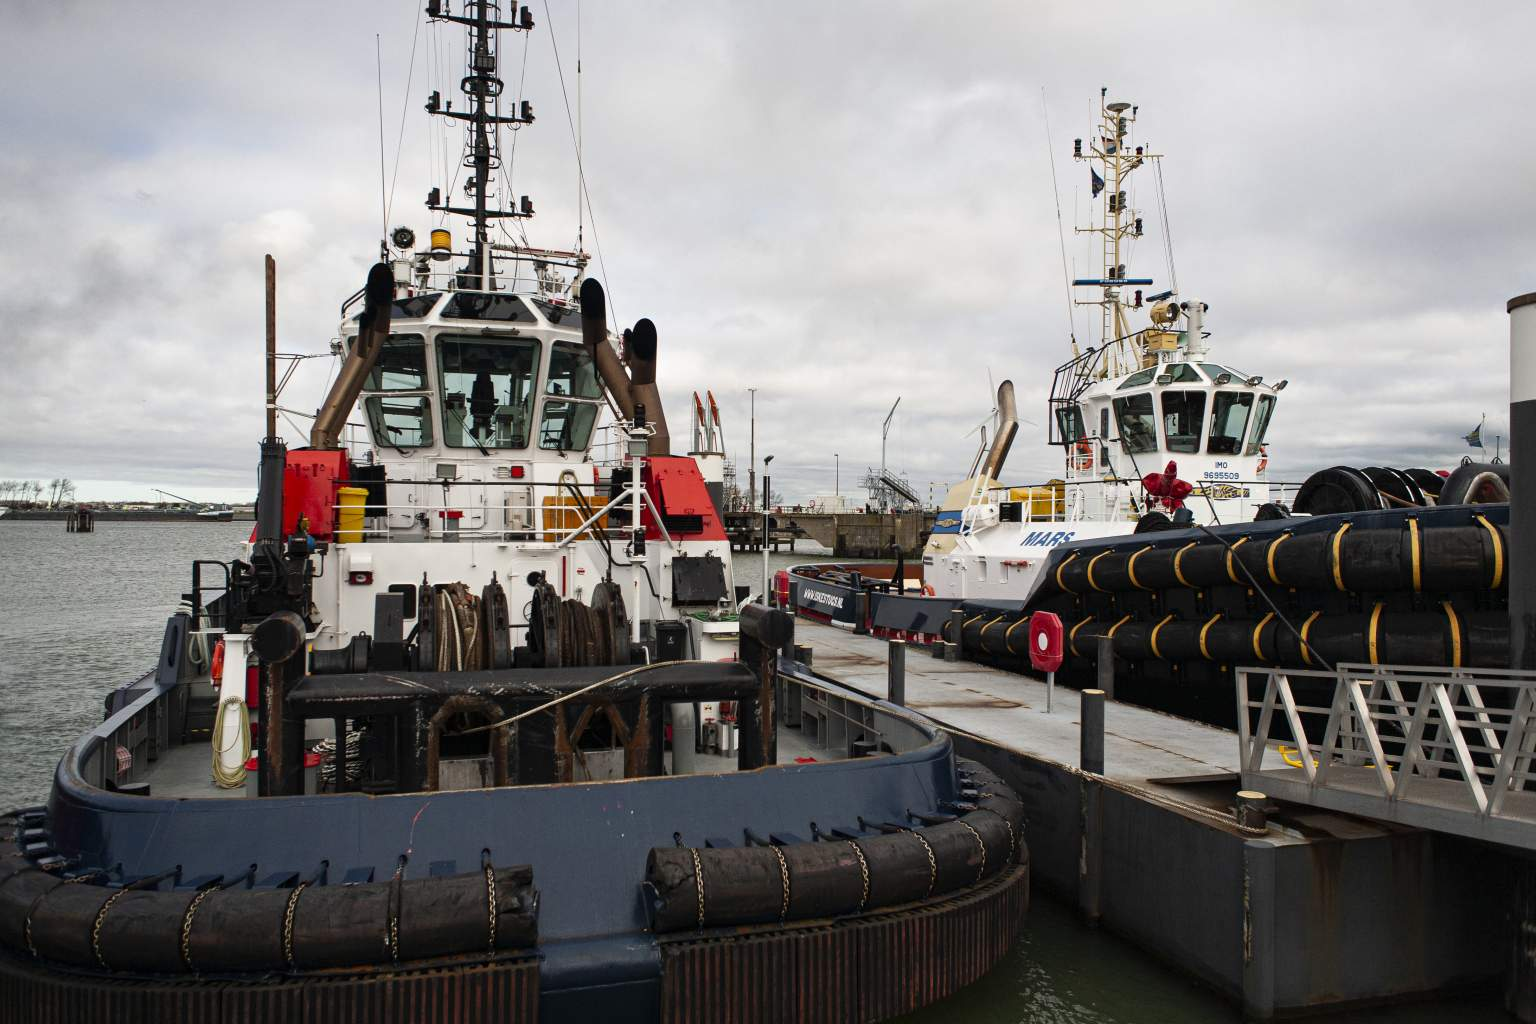 Tugboats with industrial solar lighting